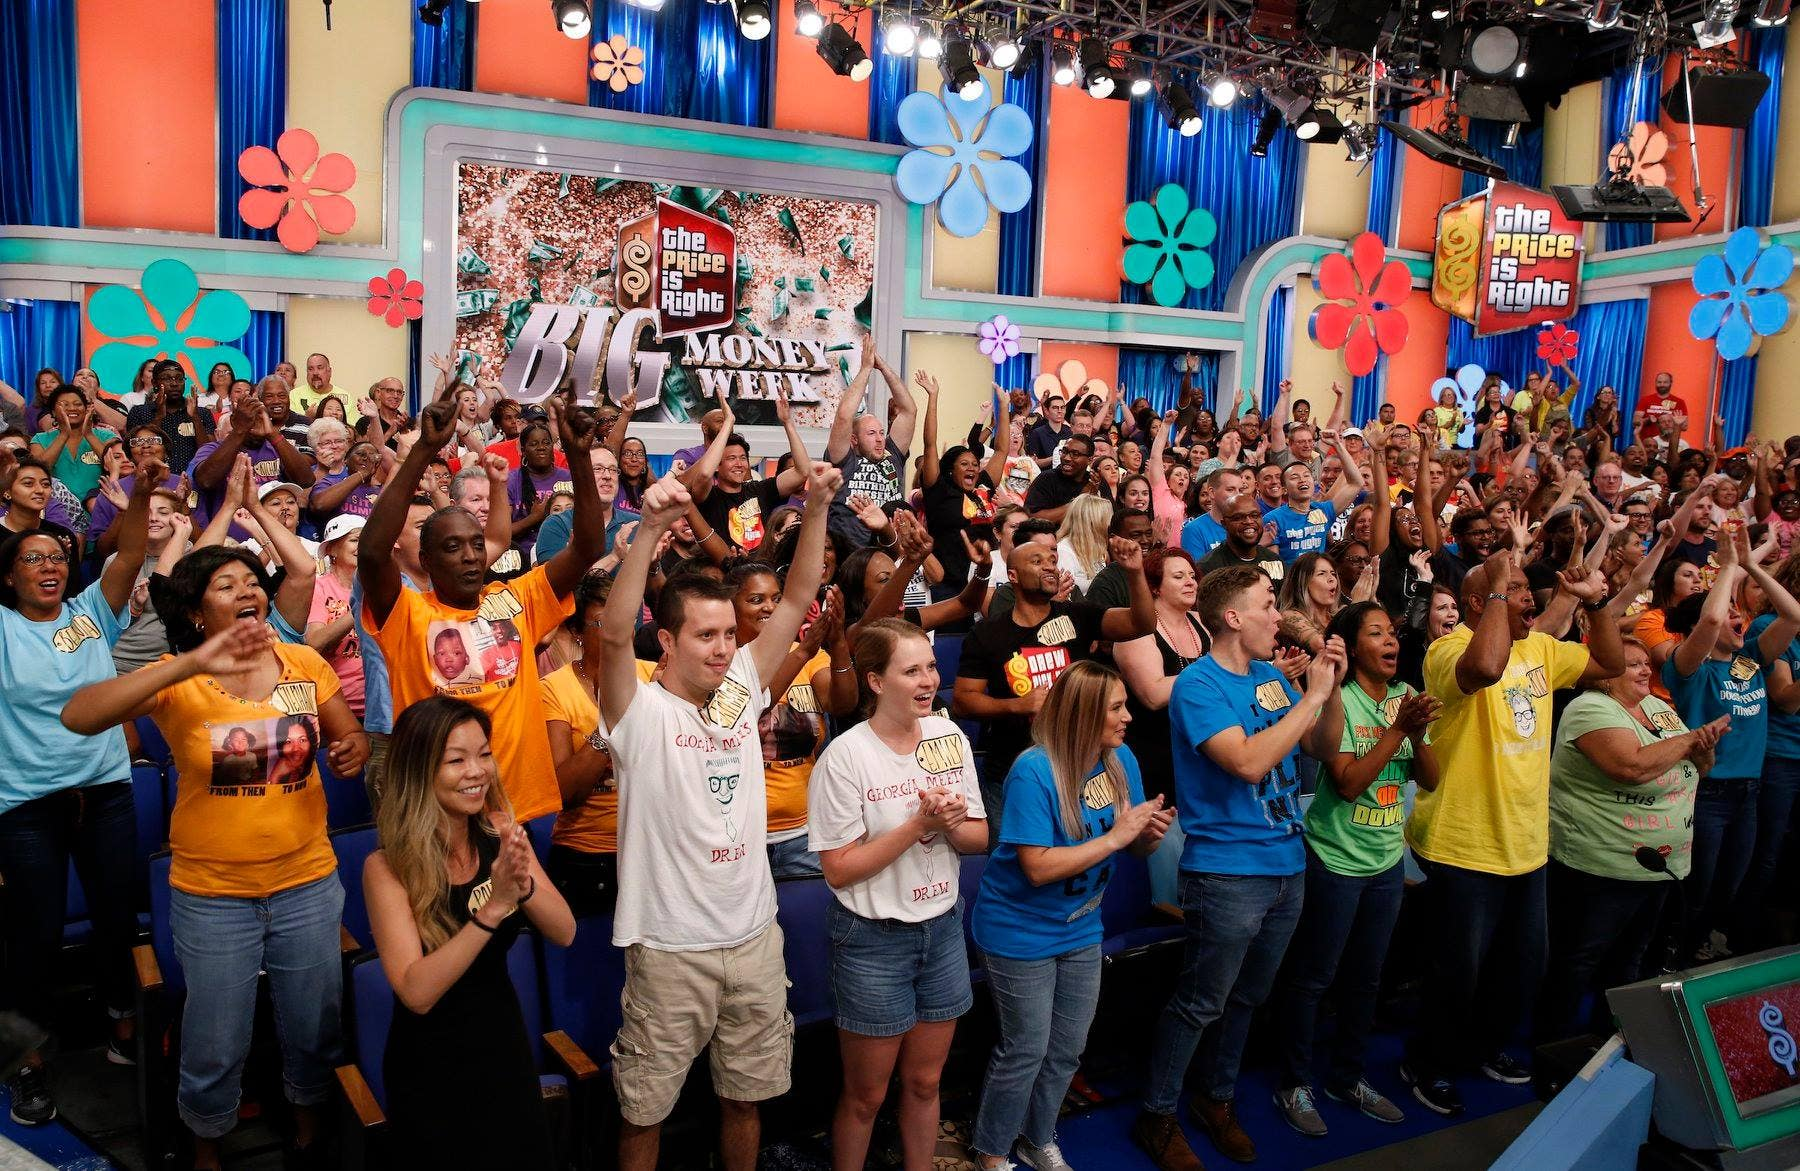 """Big Money Week on """"The Price is Right"""""""